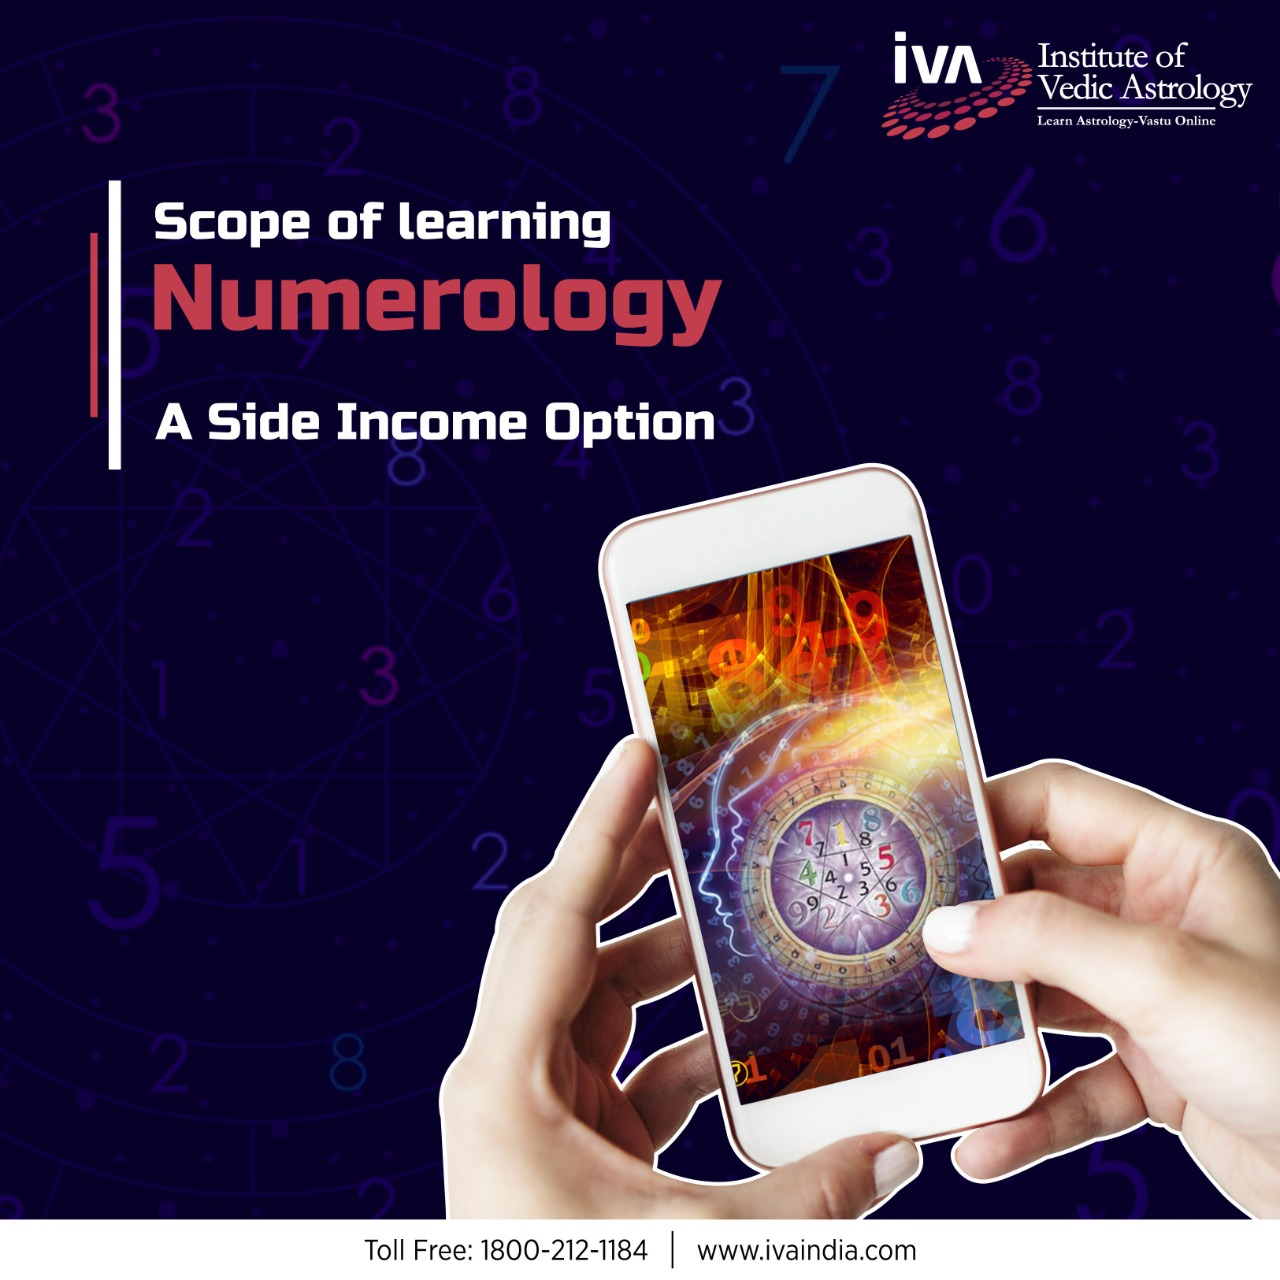 Scope of learning Numerology - A Side Income Option